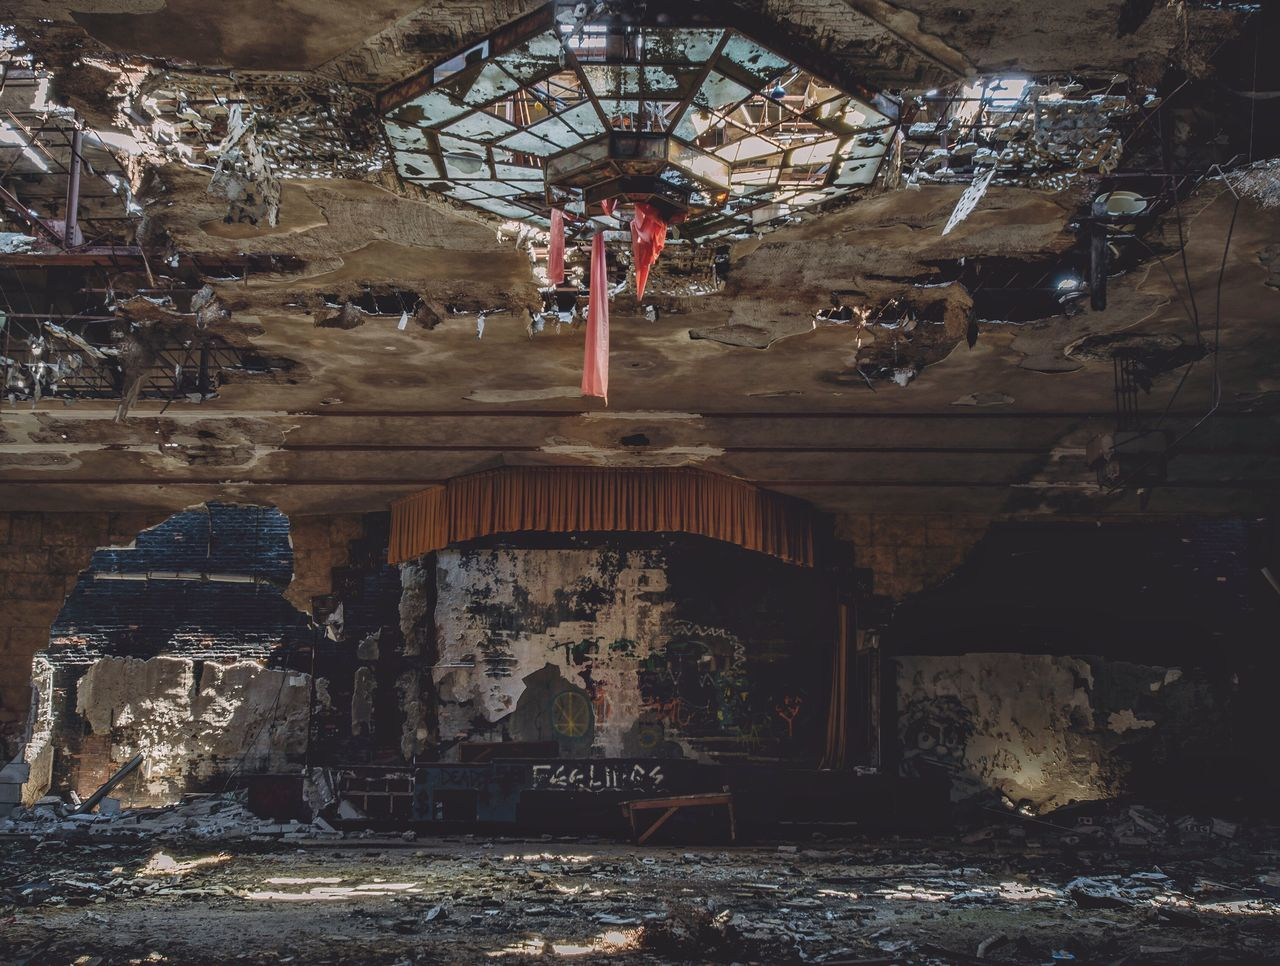 Ballroom blitz Built Structure Hanging Architecture Low Angle View No People Outdoors Day Abandoned Abandoned Places Abandoned Buildings Decay Exploring Explore